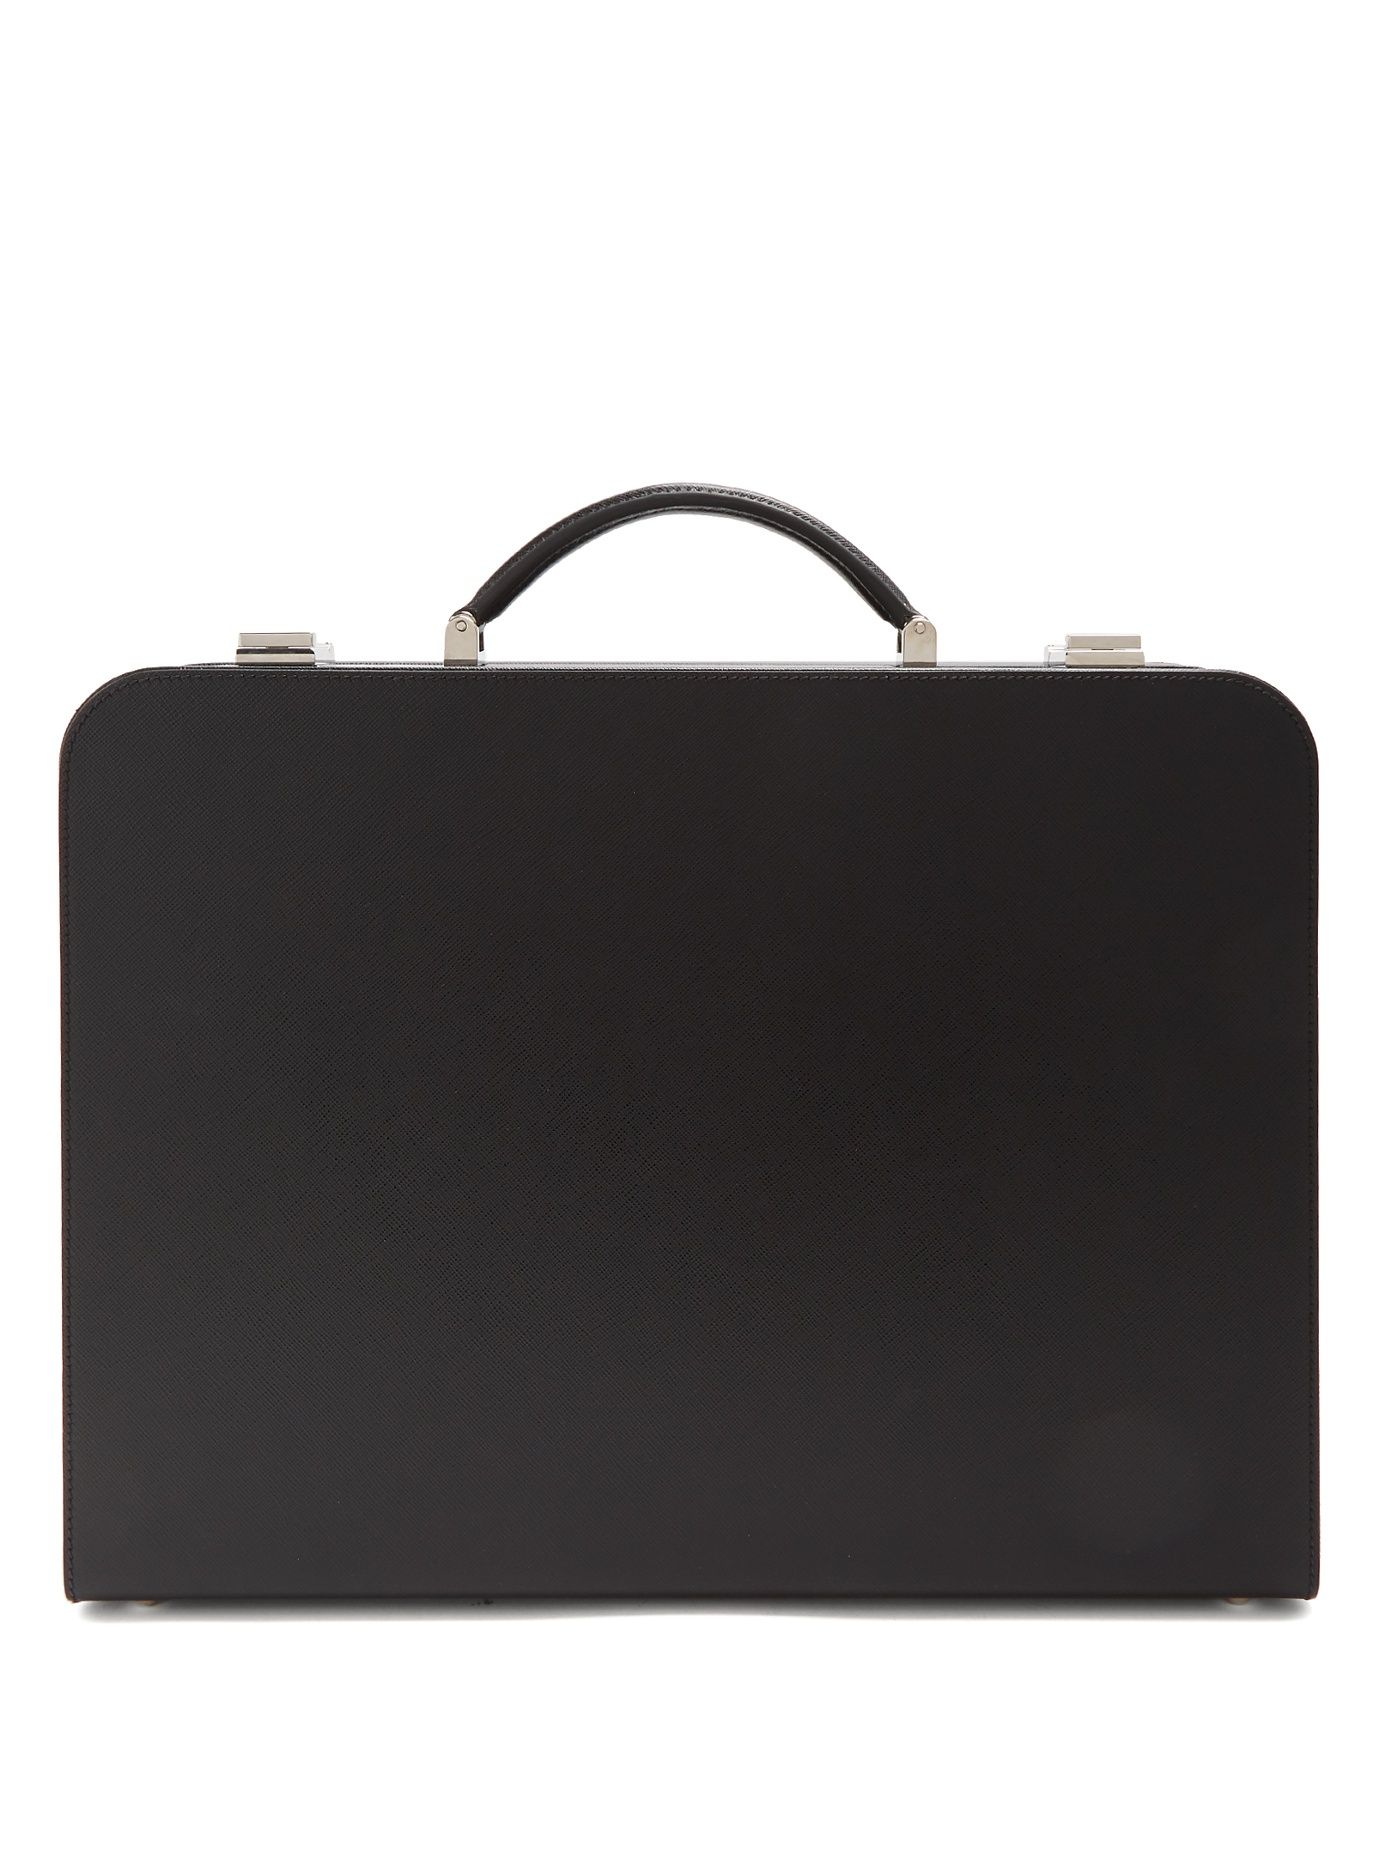 f34ba7d18834a5 Click here to buy Prada Top-handle saffiano-leather briefcase at  MATCHESFASHION.COM